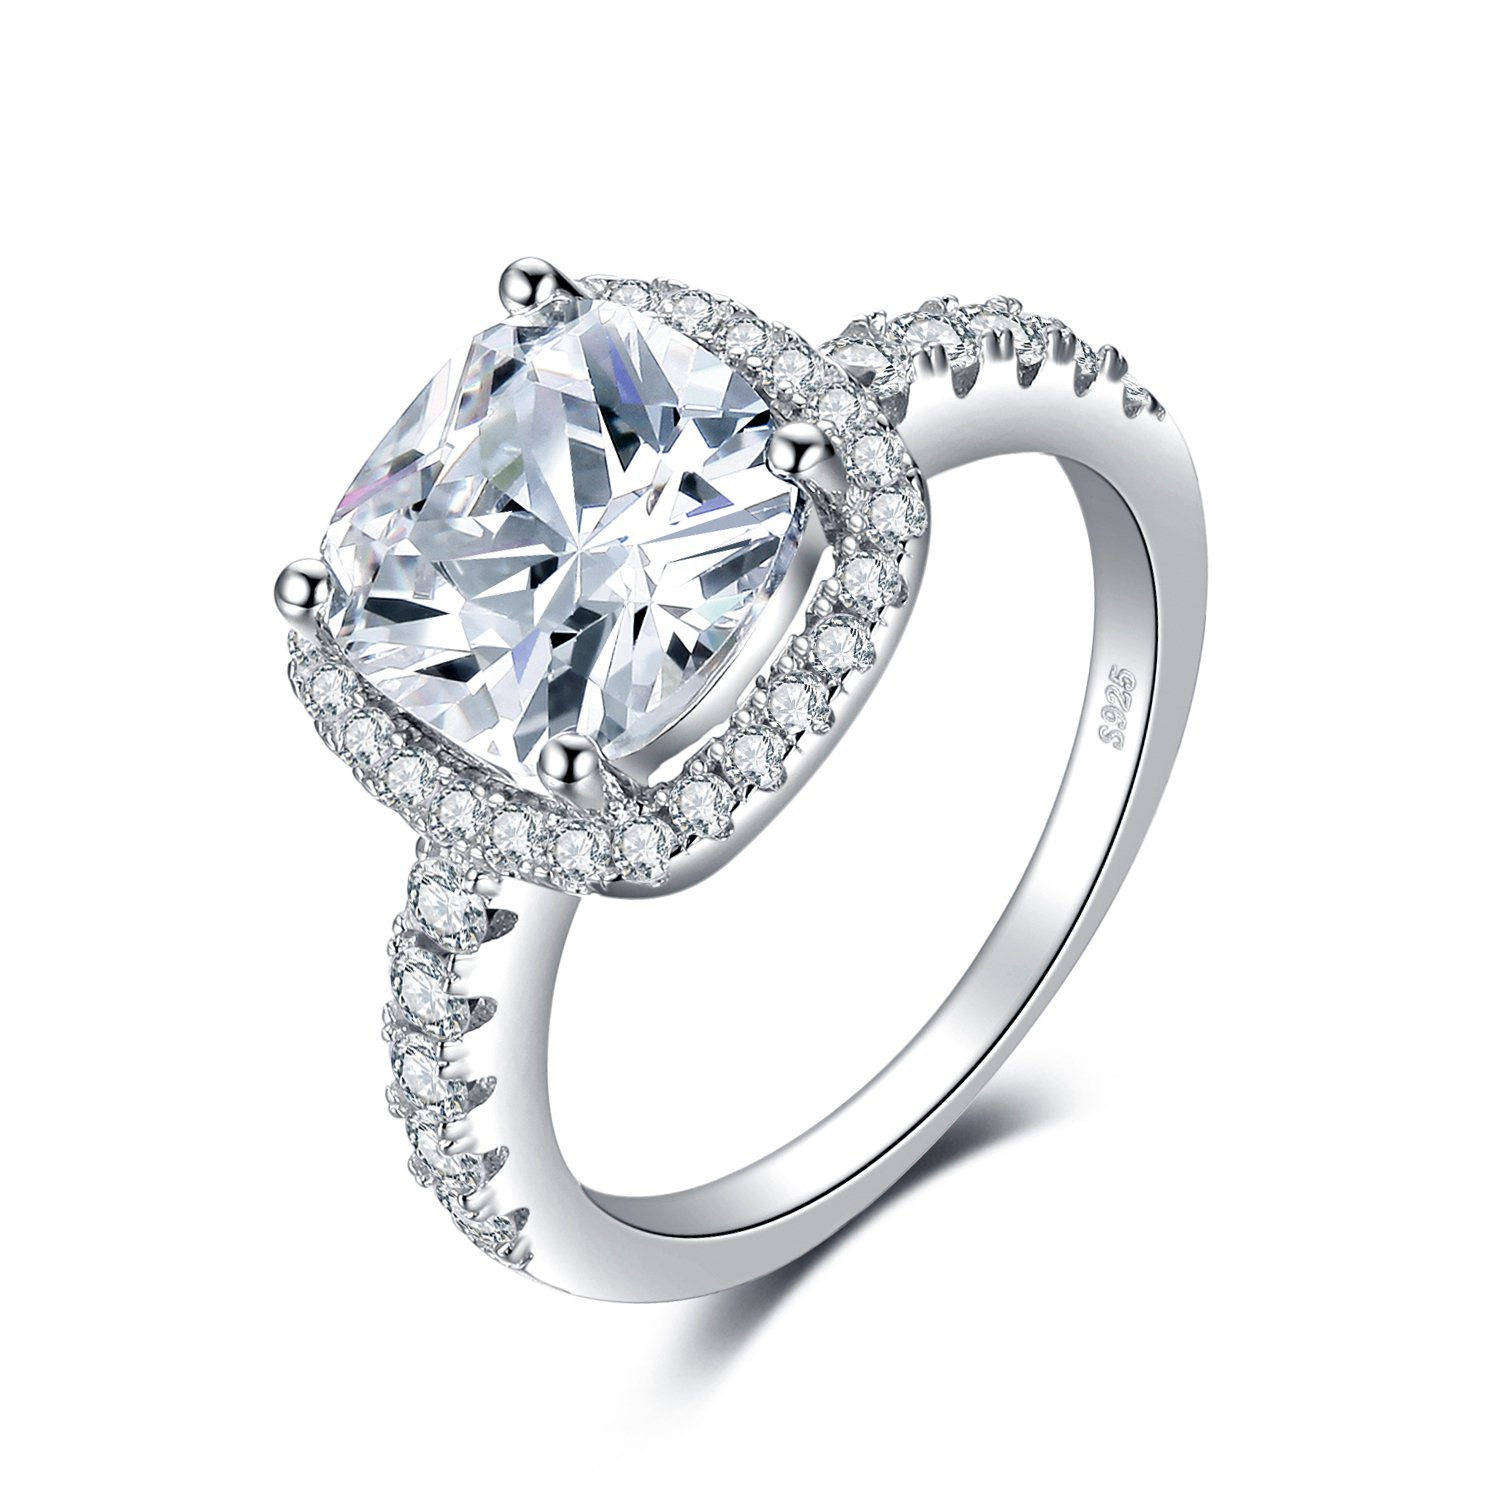 JewelryPalace Cushion 3ct Cubic Zirconia Promise Halo Solitaire Engagement Ring 925 Sterling Silver Size 7